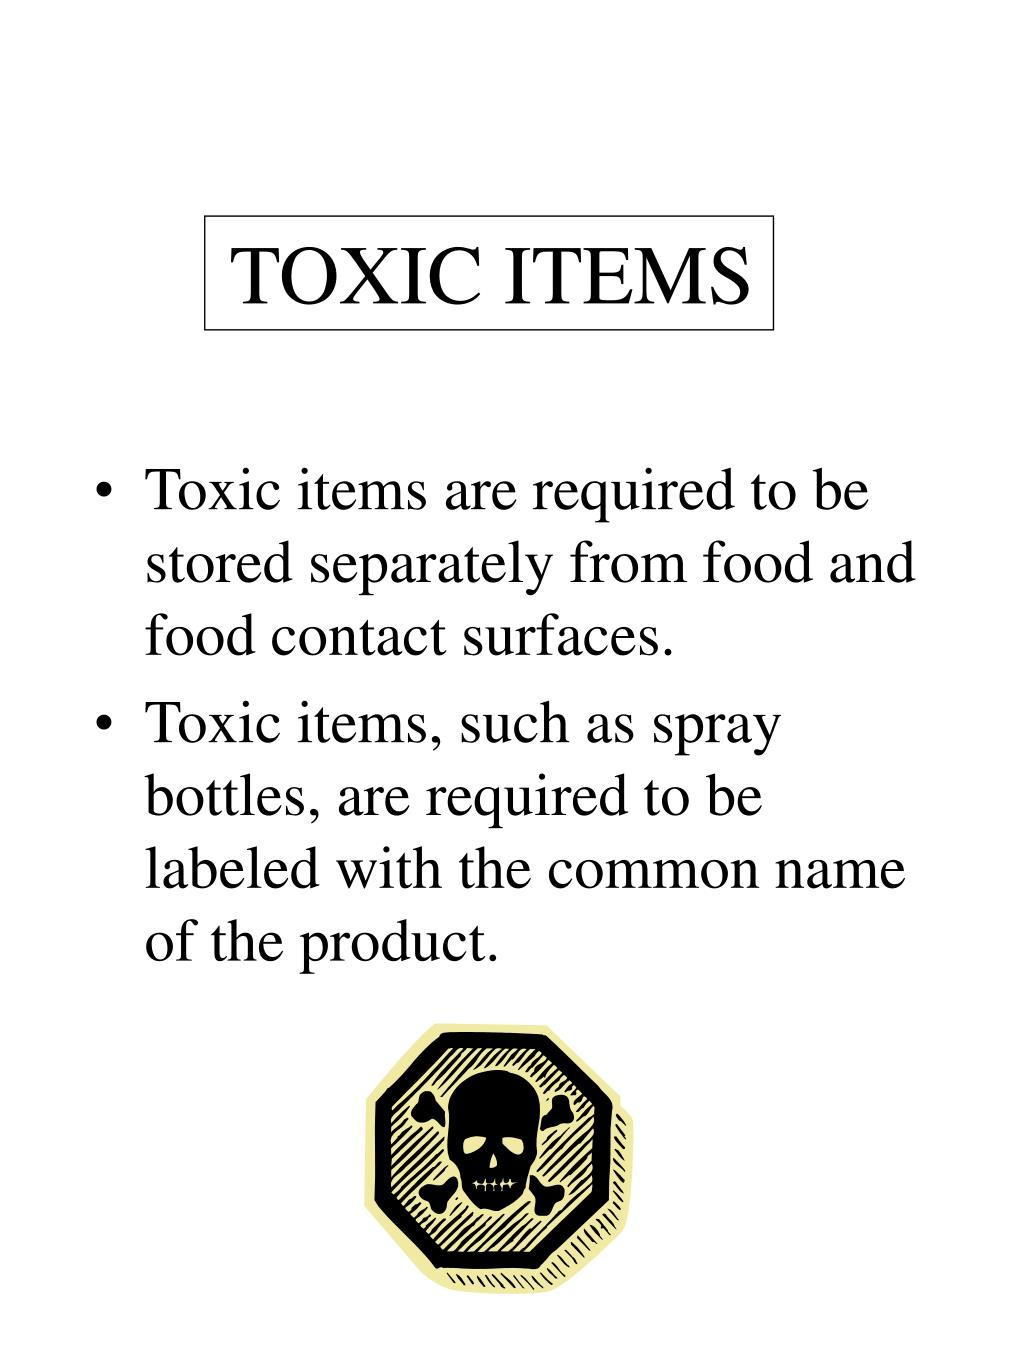 TOXIC ITEMS